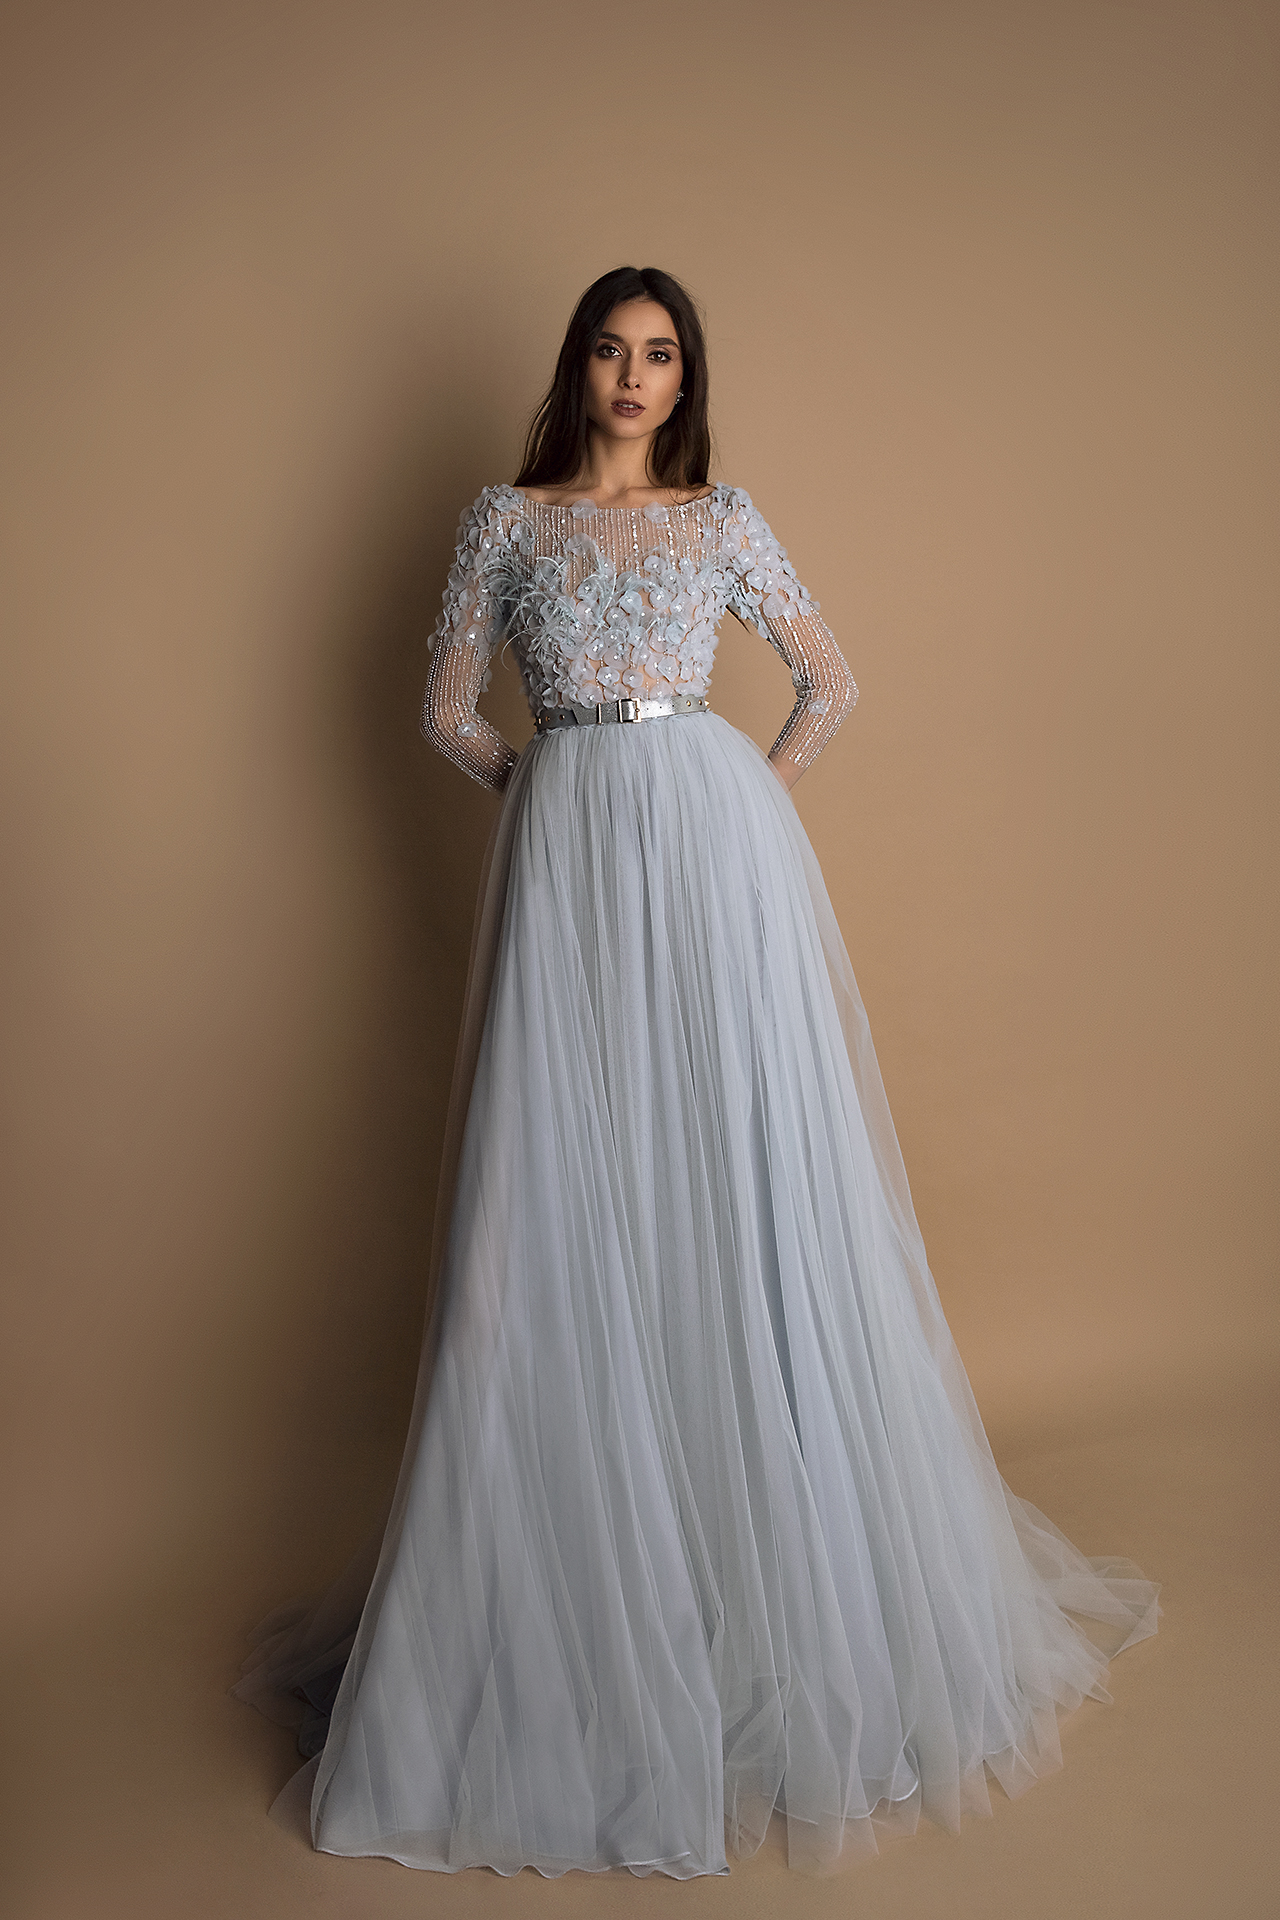 Evening Dresses 1541 Silhouette  A Line  Color  Blue  Neckline  Bateau (Boat Neck)  Sleeves  Long Sleeves  Fitted  Train  With train